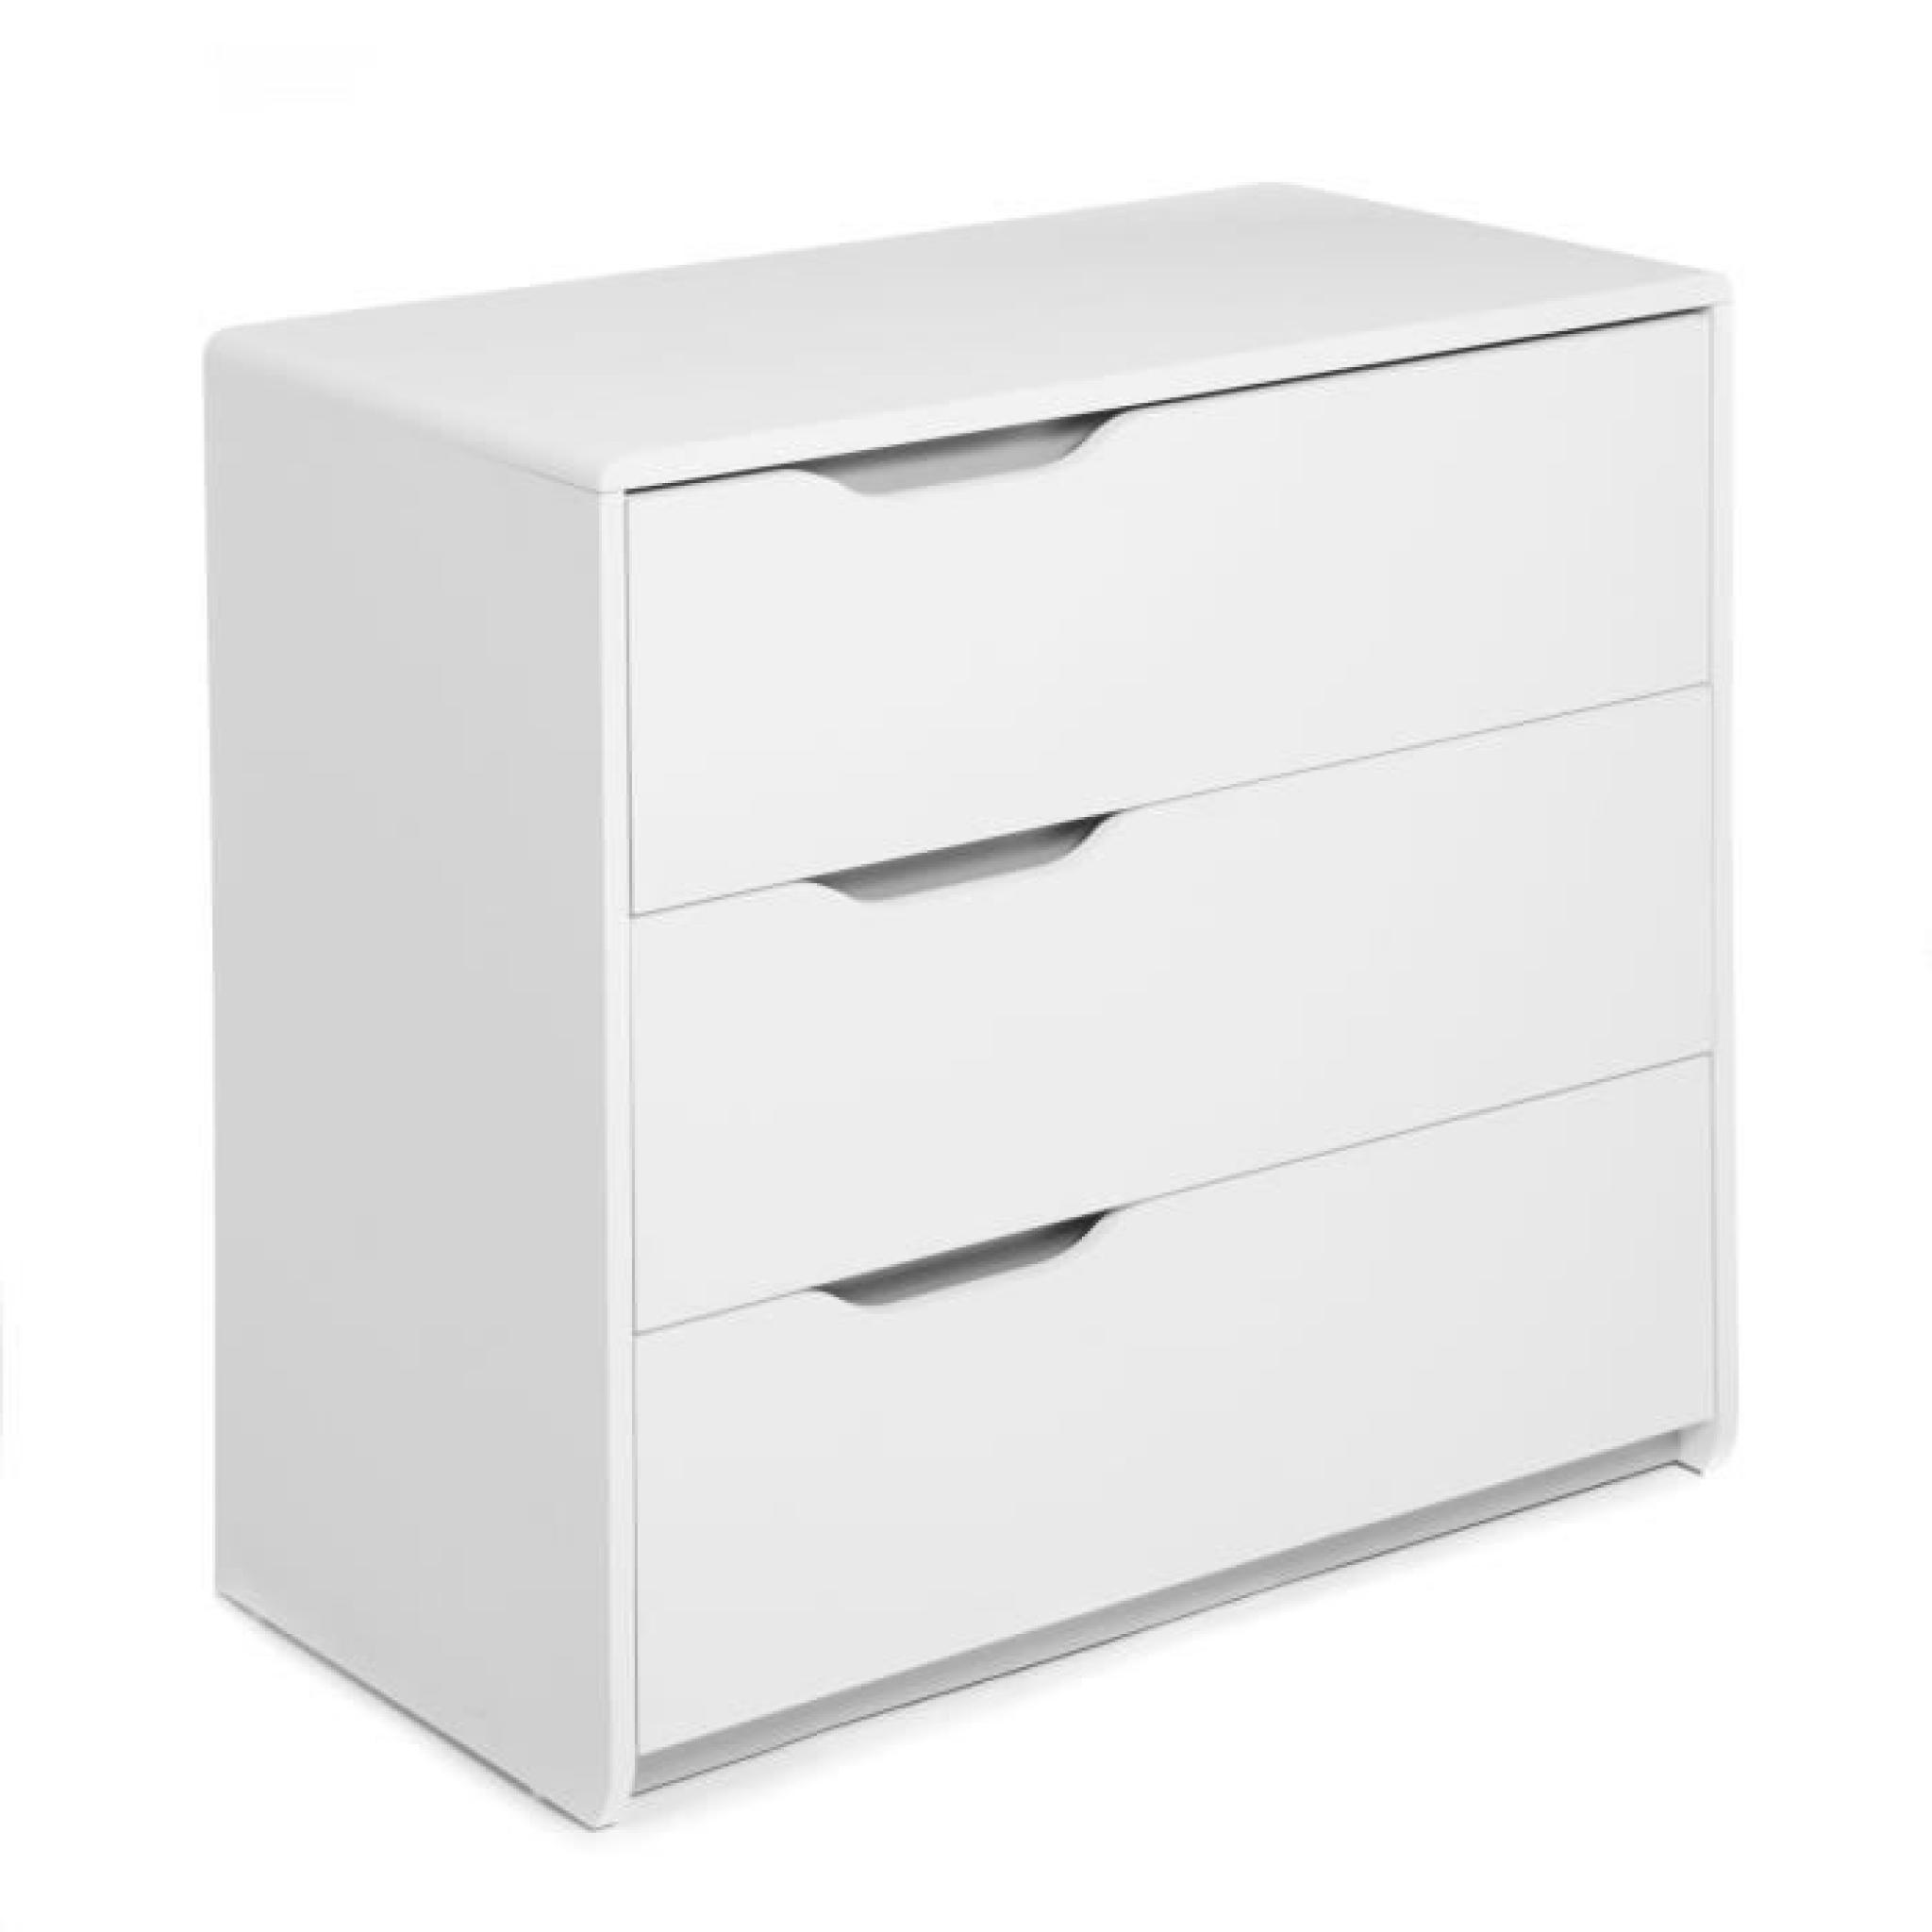 Cool commode blanche 3 tiroirs achat vente commode pas - Achat commode pas cher ...